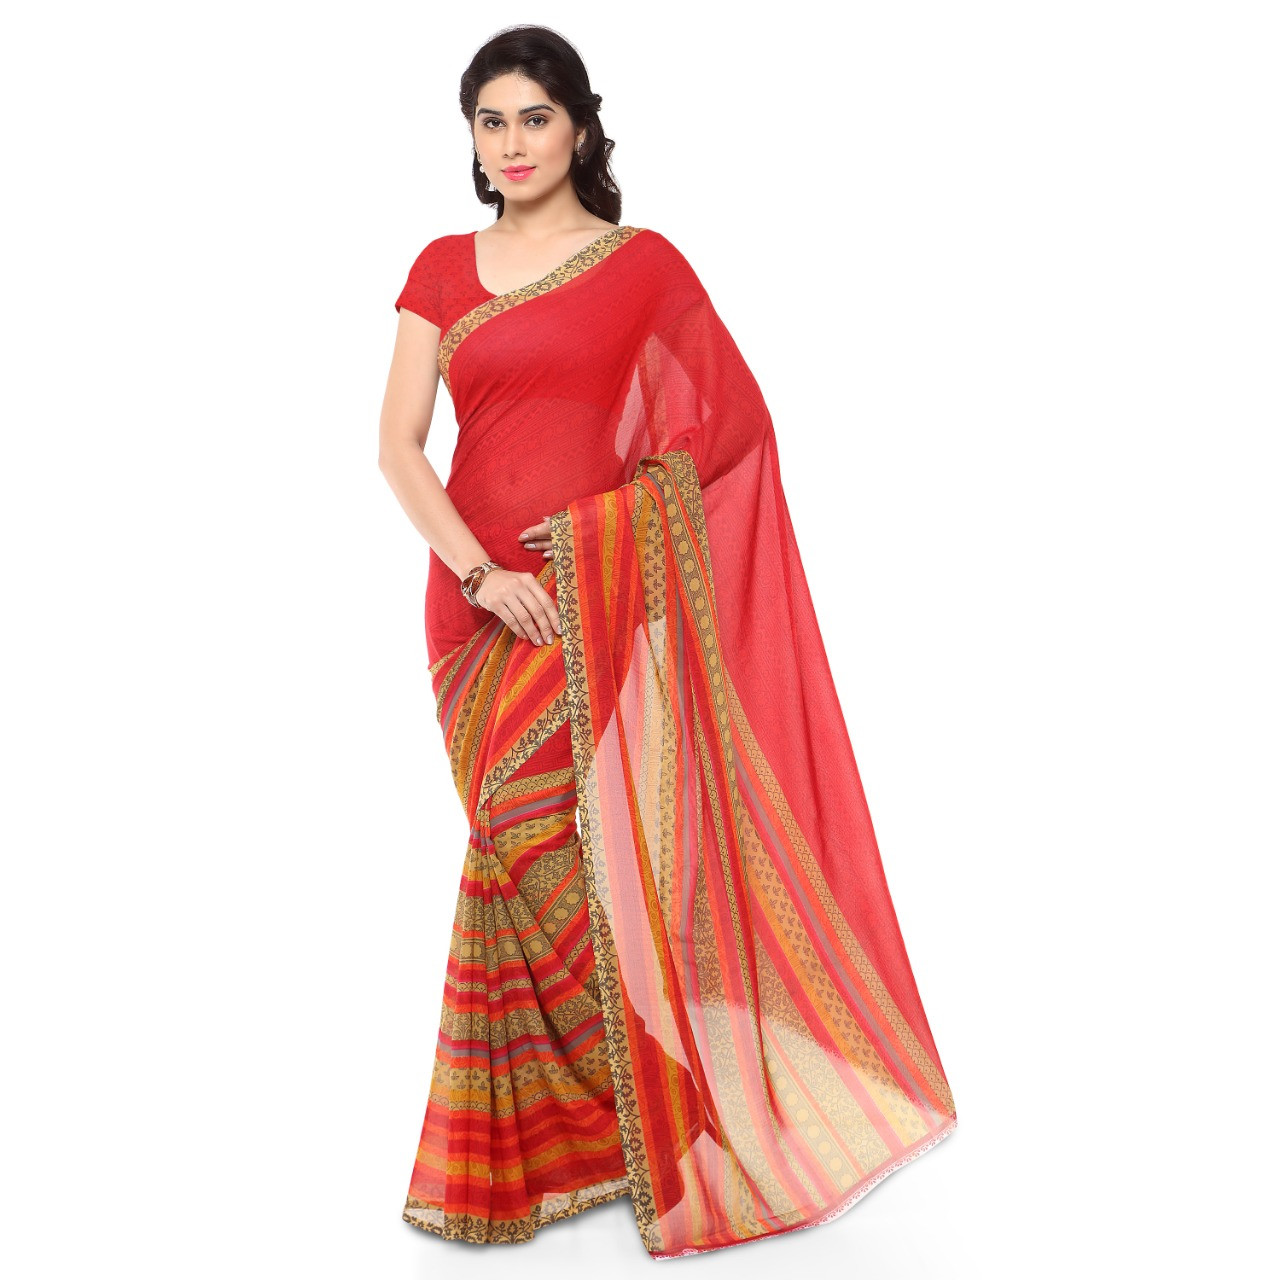 Lattest Faux Georgette Red Color Printed Saree With Blouse